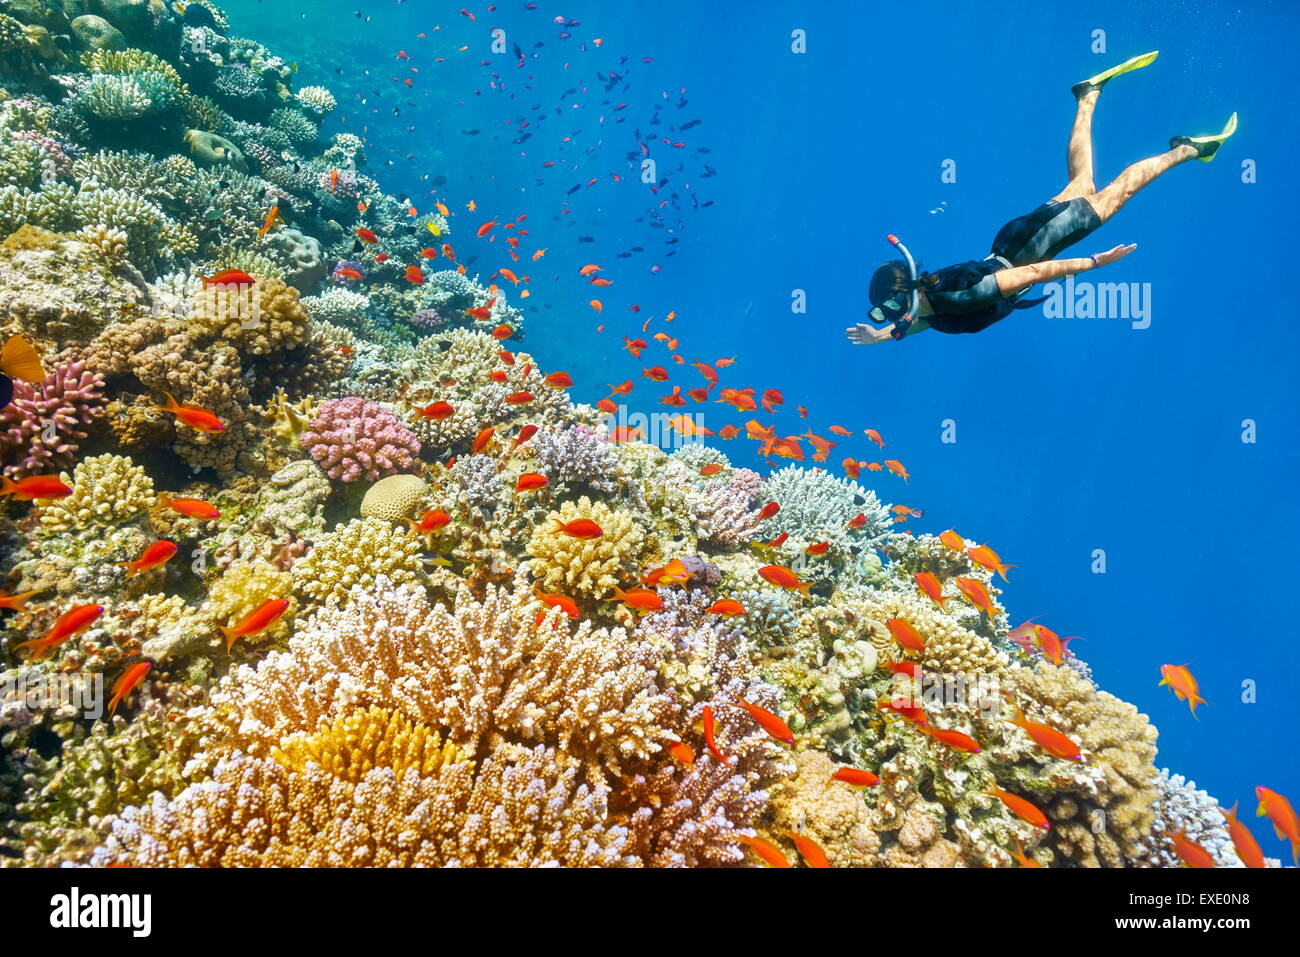 Red Sea, Egypt - woman snorkeling underwater, coral reef, Blue Hole near Dahab Stock Photo